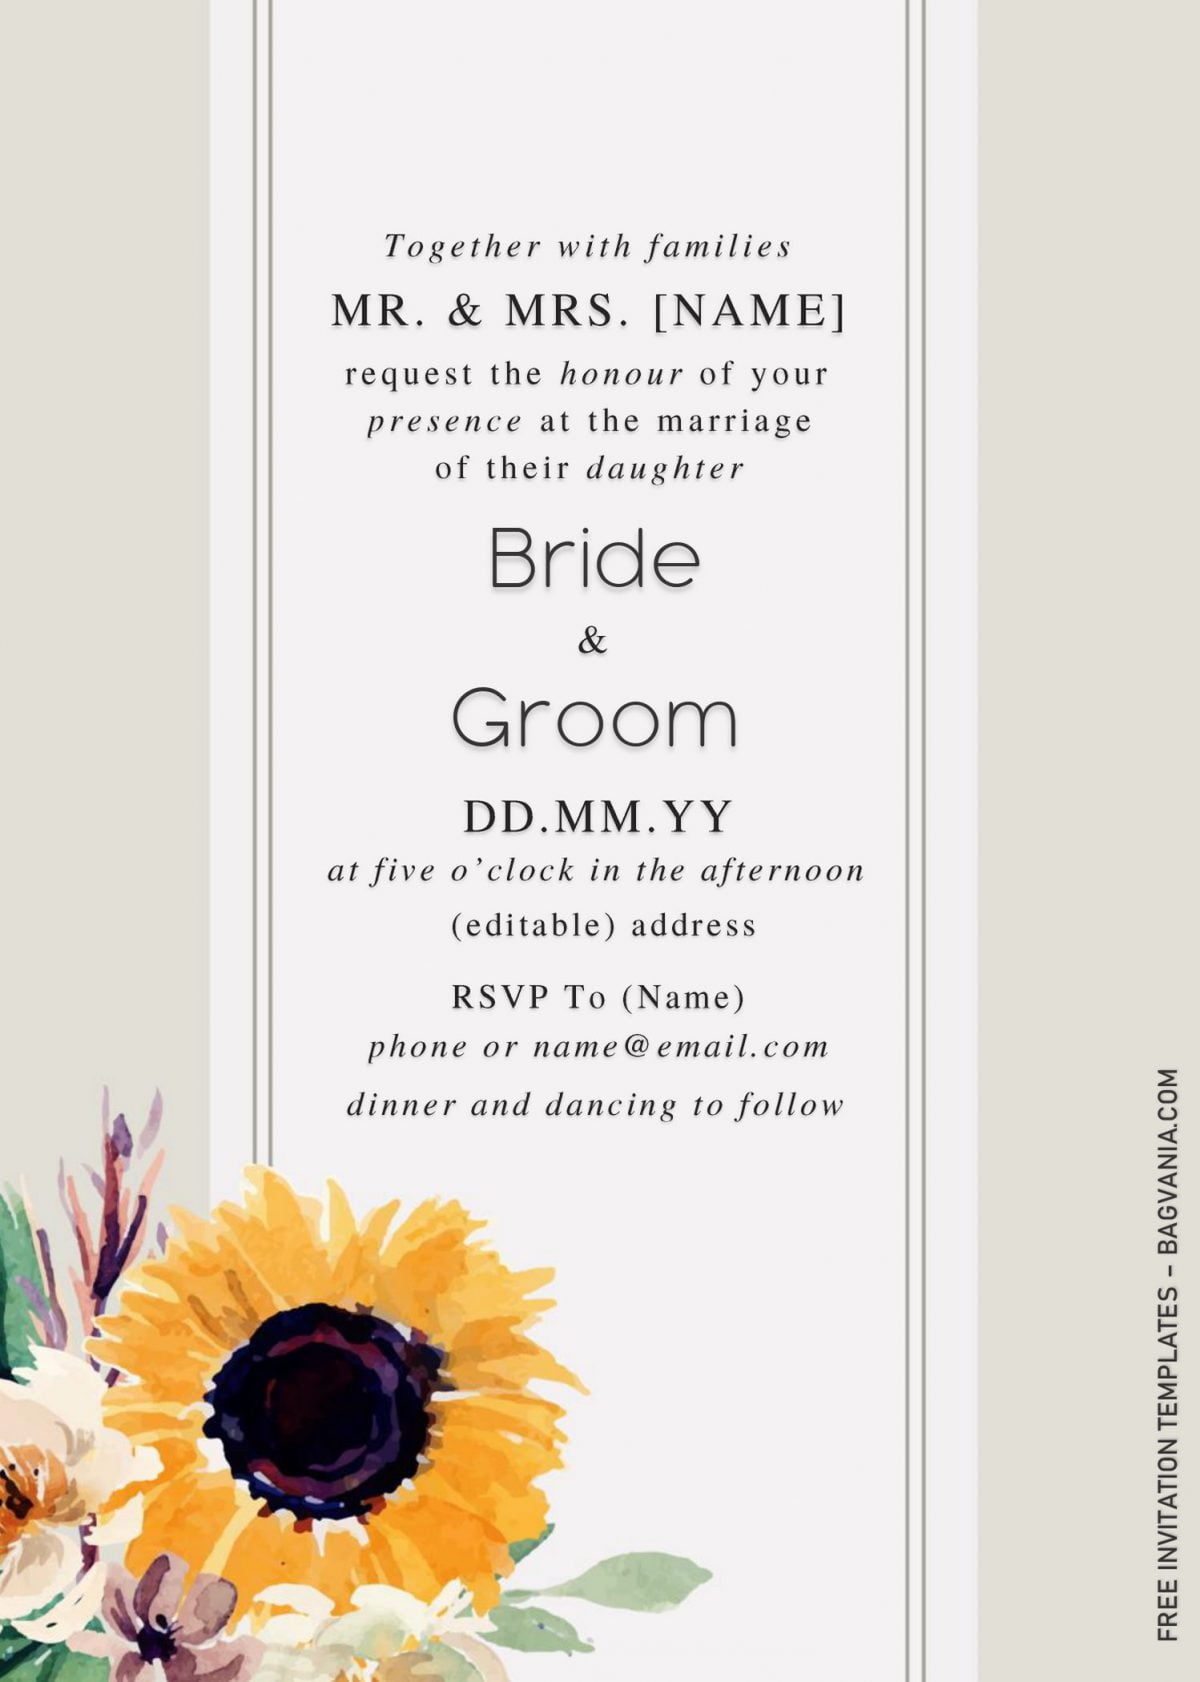 Sunflower Wedding Invitation Templates - Editable With Microsoft Word and has bright yellow sunflowers